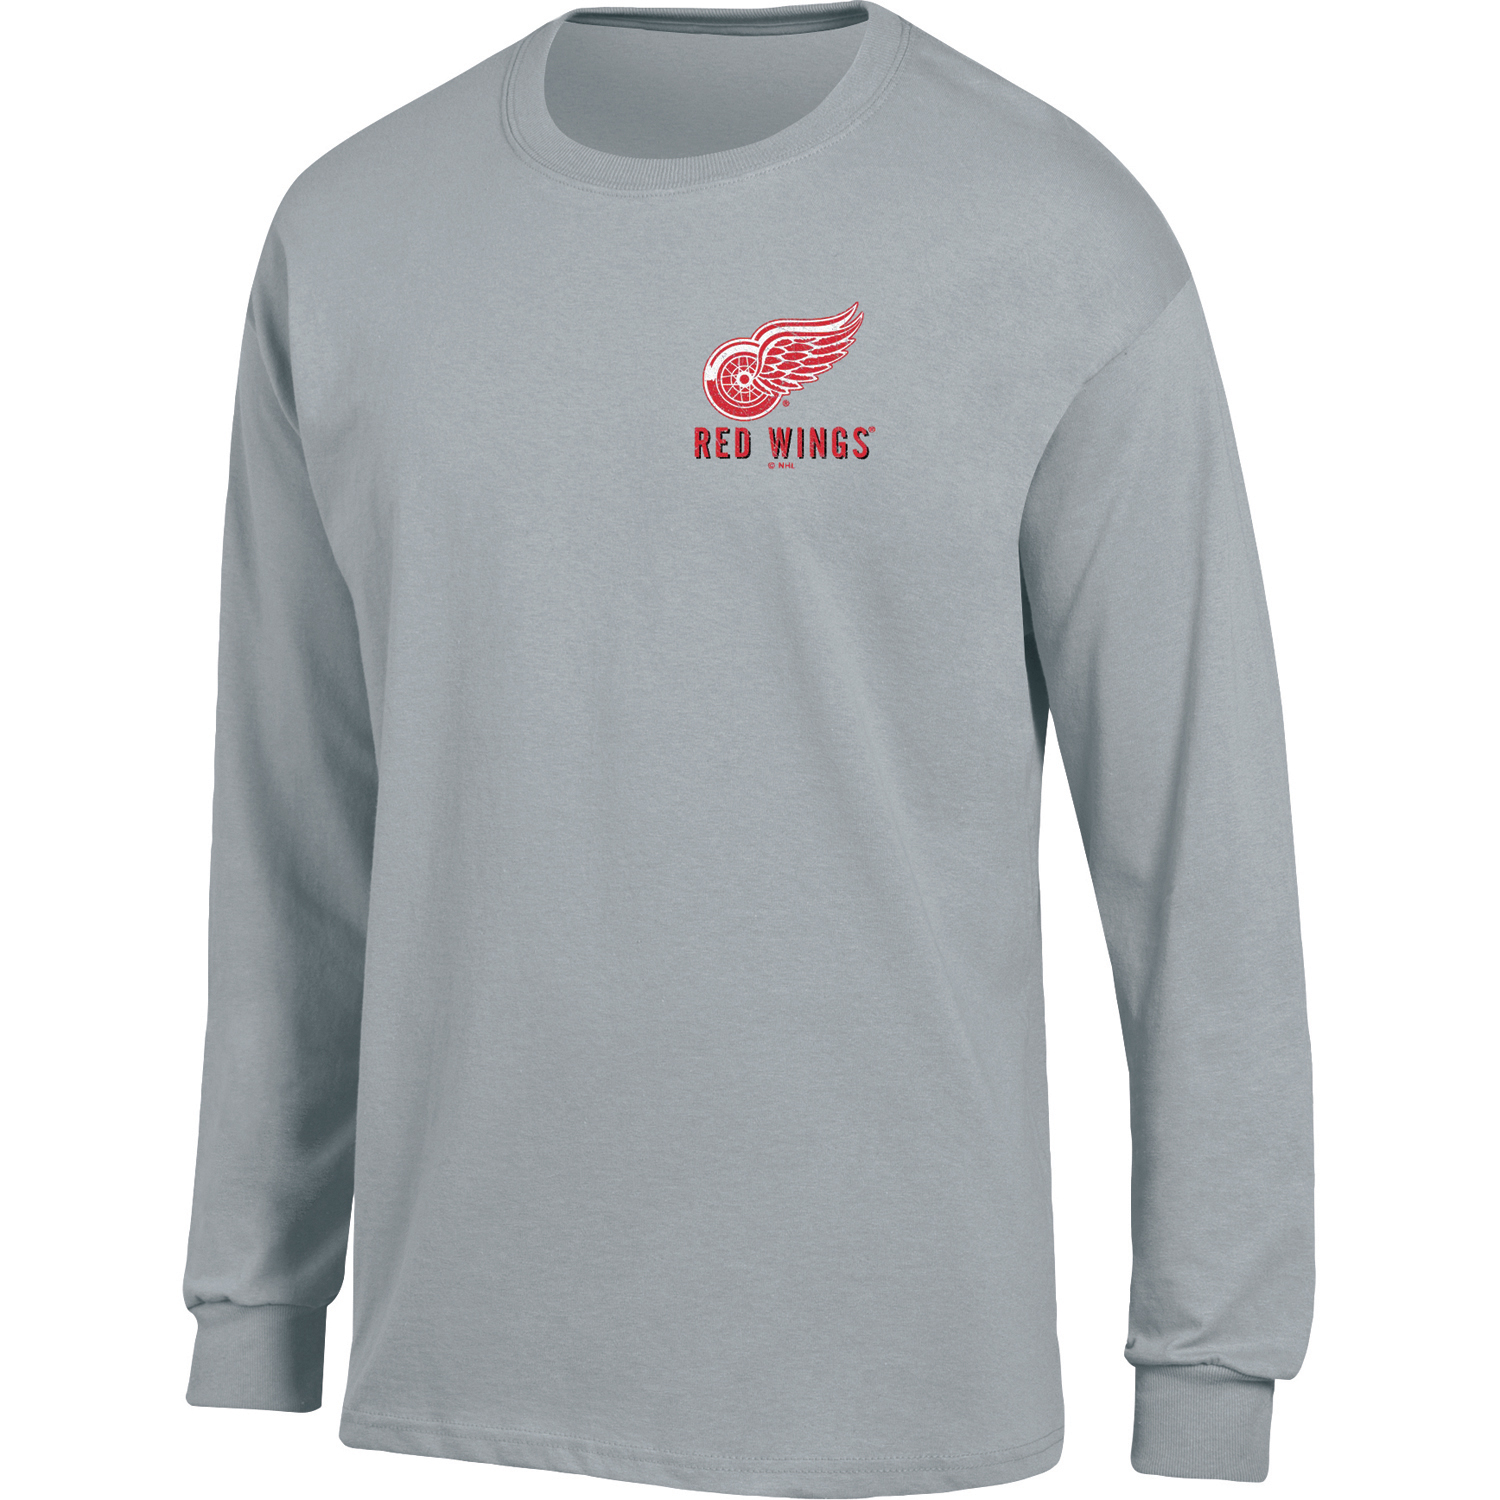 Men's Heathered Gray Detroit Red Wings Back Hit Long Sleeve T-Shirt